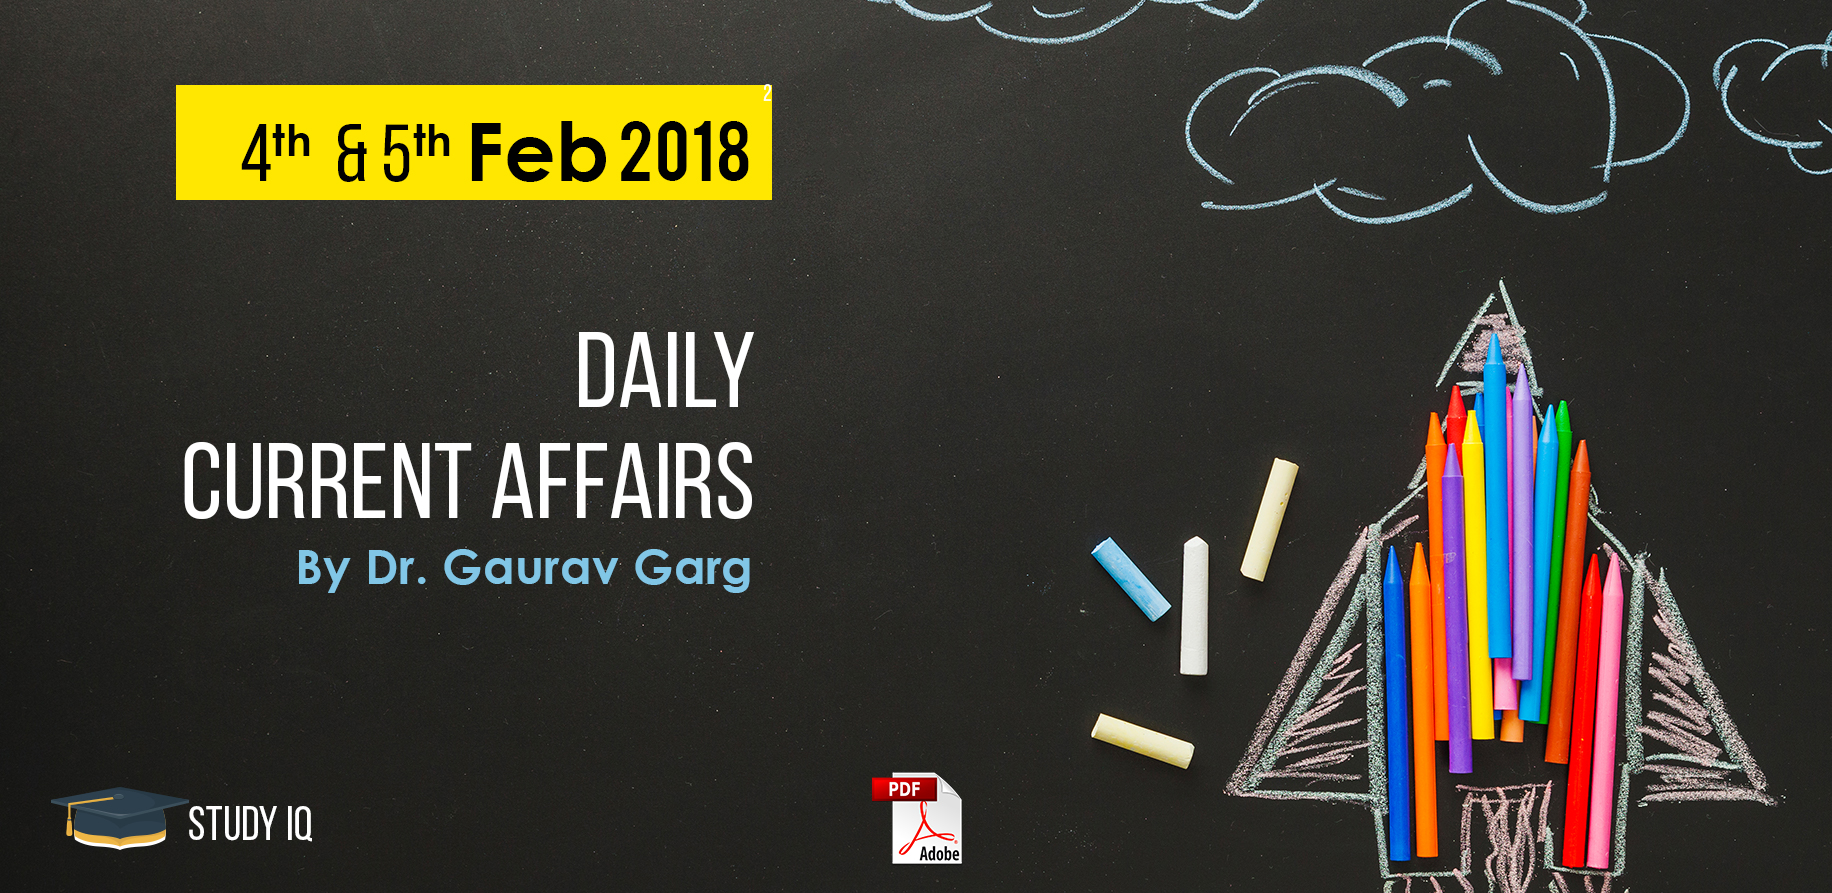 daily feb 4th and 5th daily current affairs